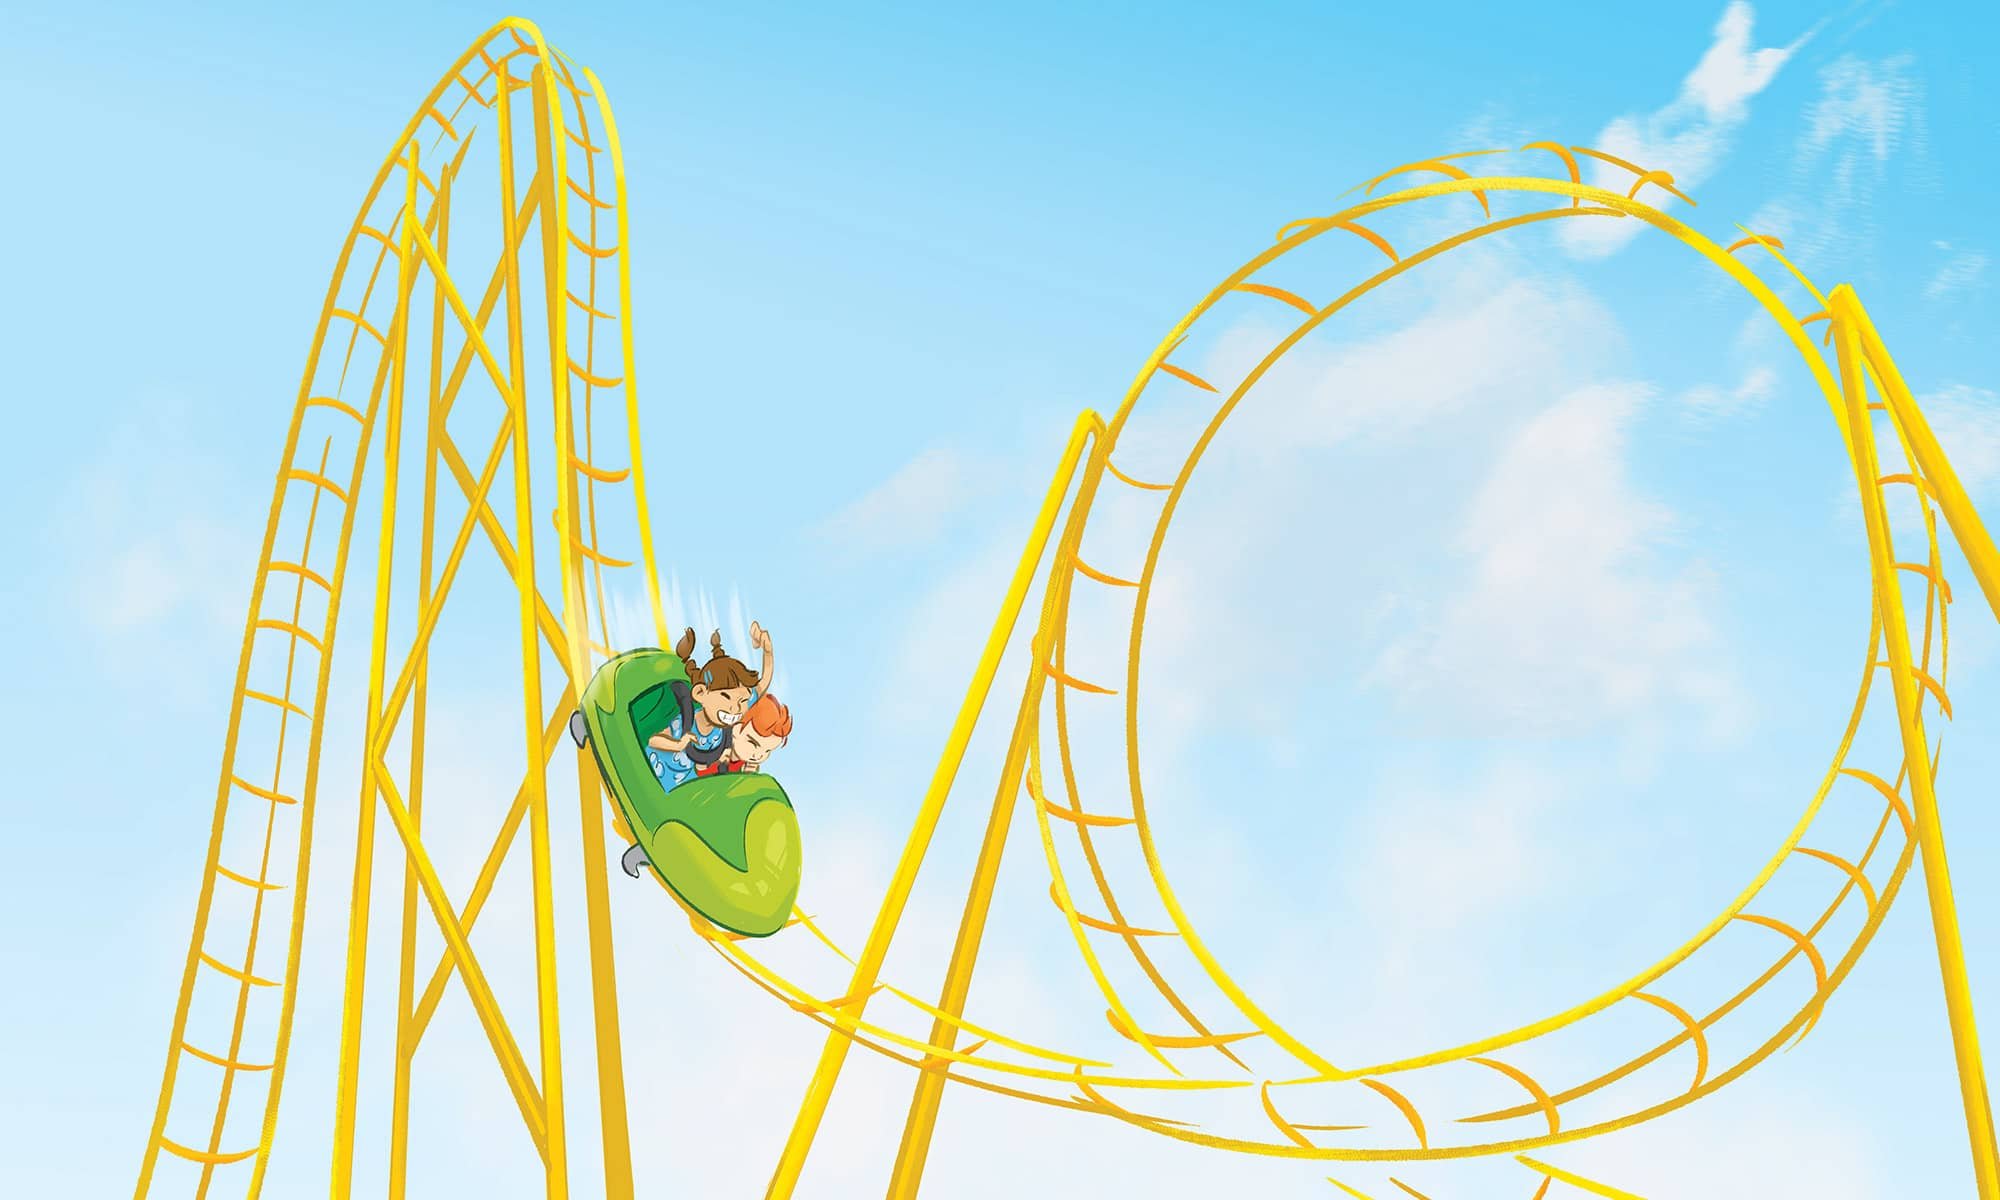 Painting of small green rollercoaster on an big yellow track in the sky.